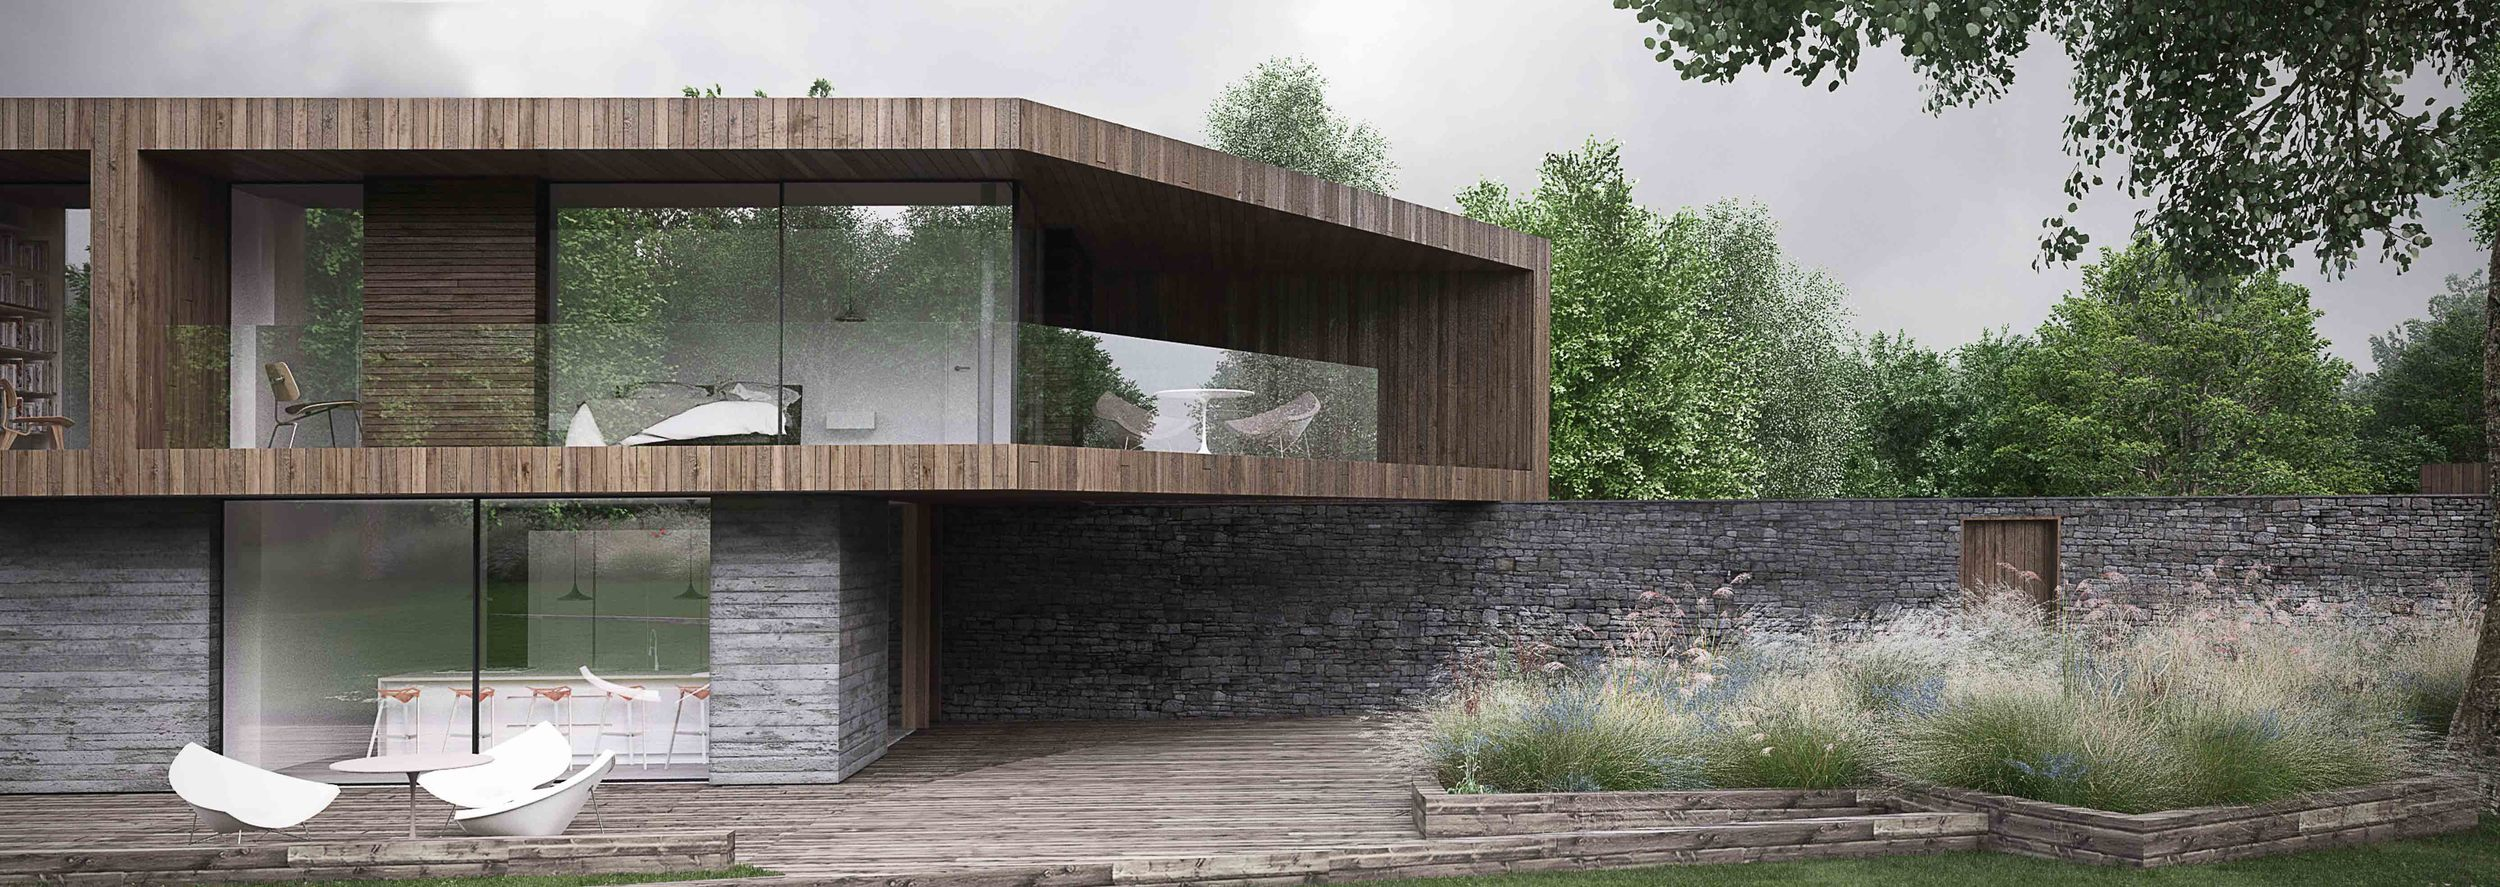 Woodland-house-exterior-render-visualisation-modern-architecture-winchester-hampshire.jpg